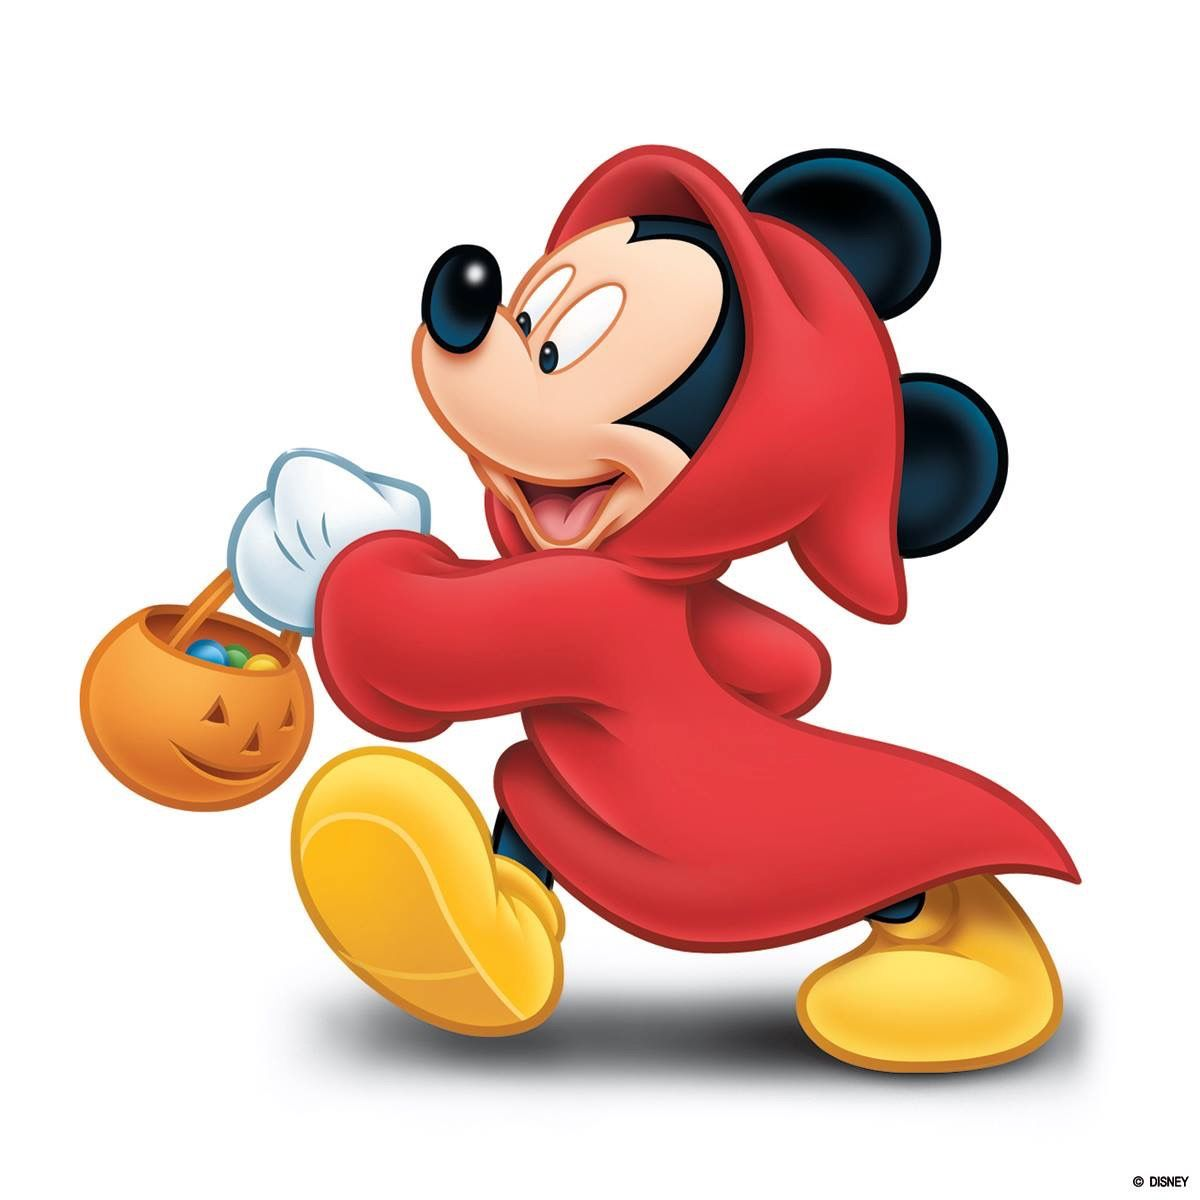 Great Wallpaper Halloween Mickey Mouse - d63818bc0c4d33868043bf43173fc62c  Graphic_701330.jpg